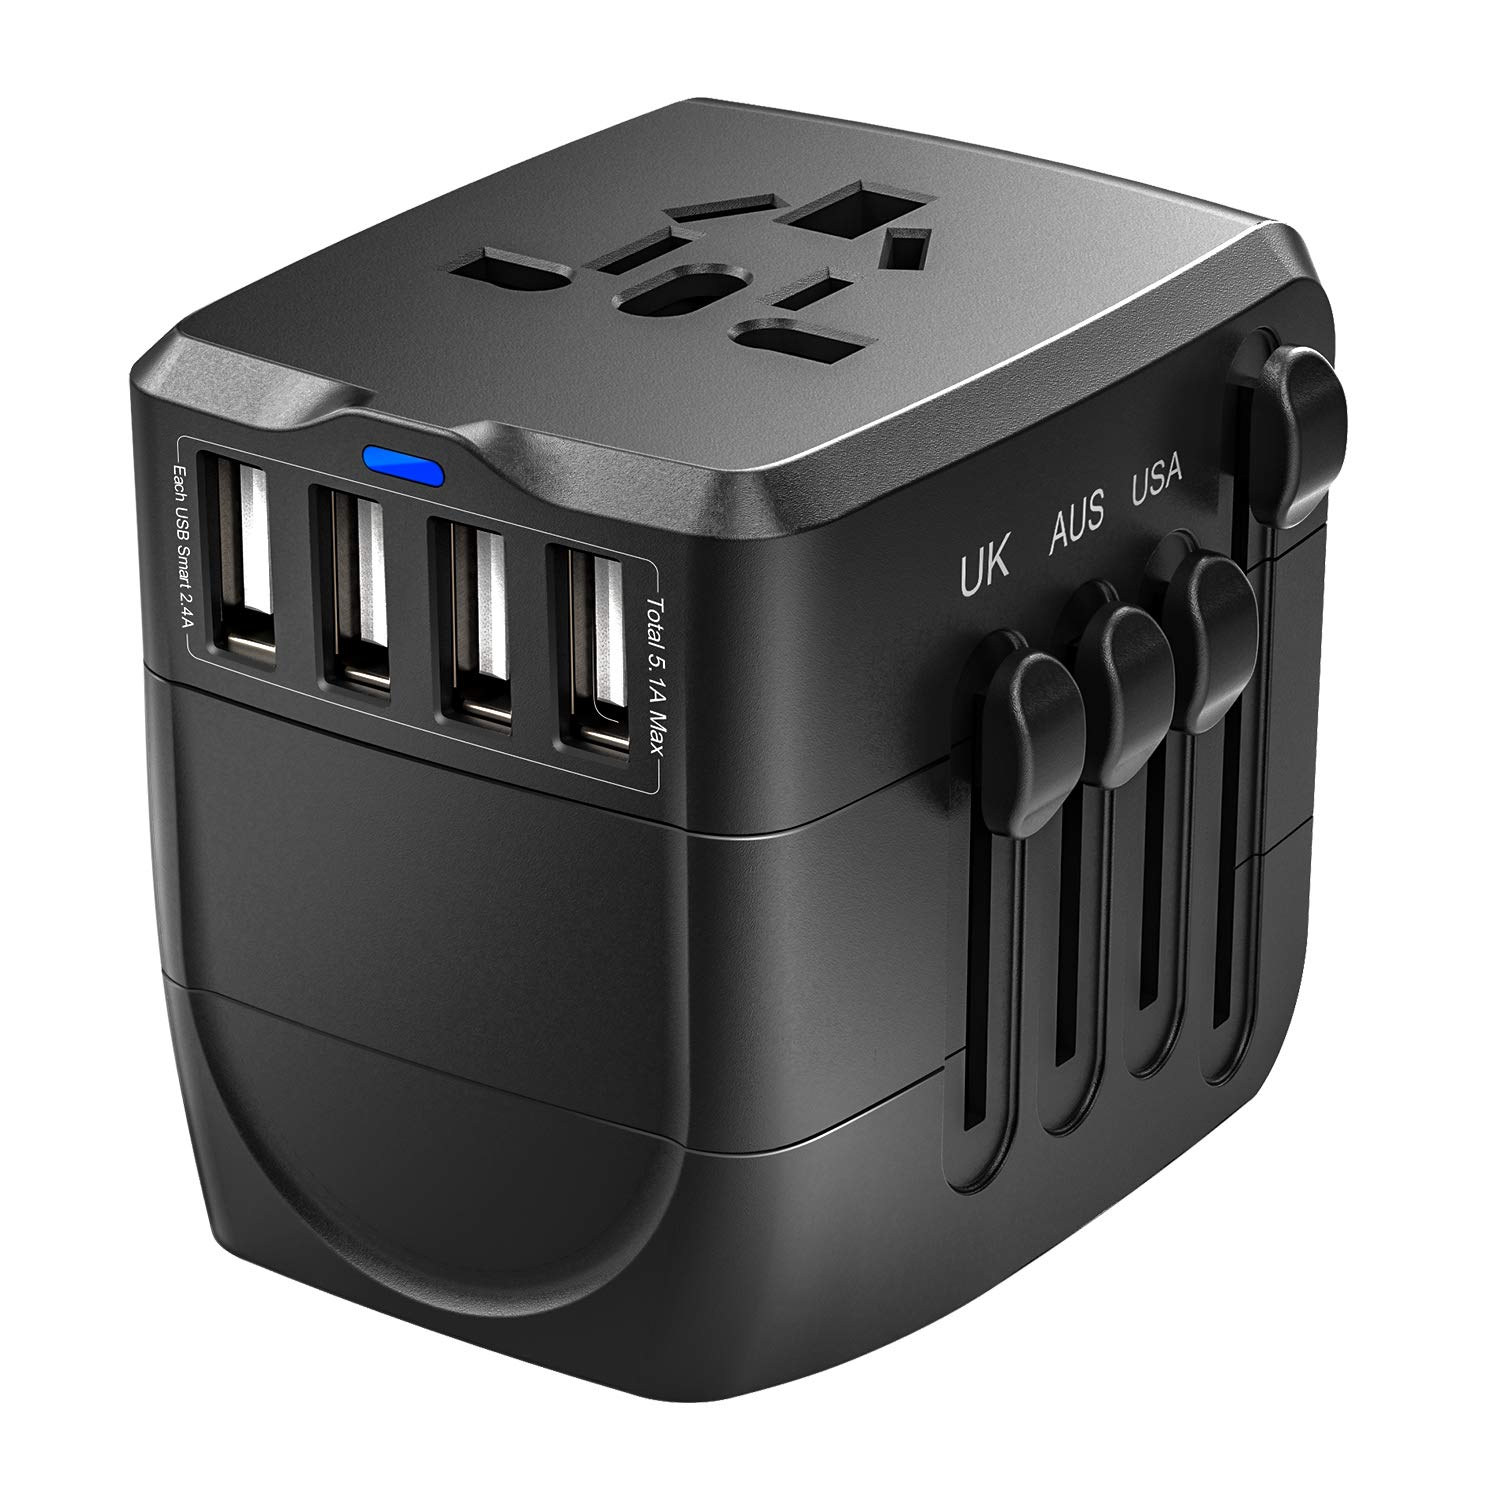 Travel Adapter, 2400W International Power Adapter, Universal Adapter with 4 USB Ports, Perfect for UK, EU, AU, US, Over 150 Countries (Black)